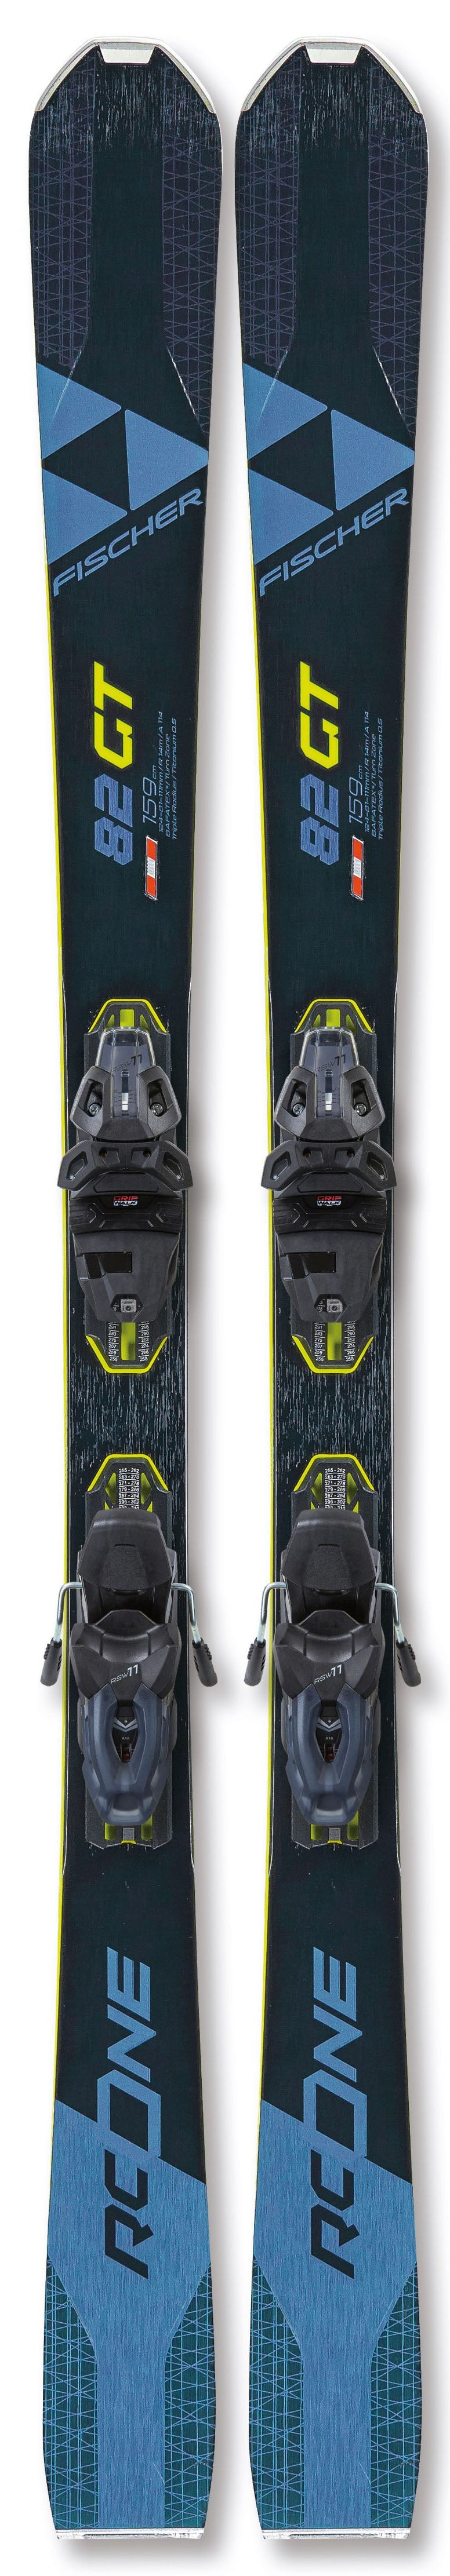 Fischer RC One 82 GT WS Skis 2021 w/bindings